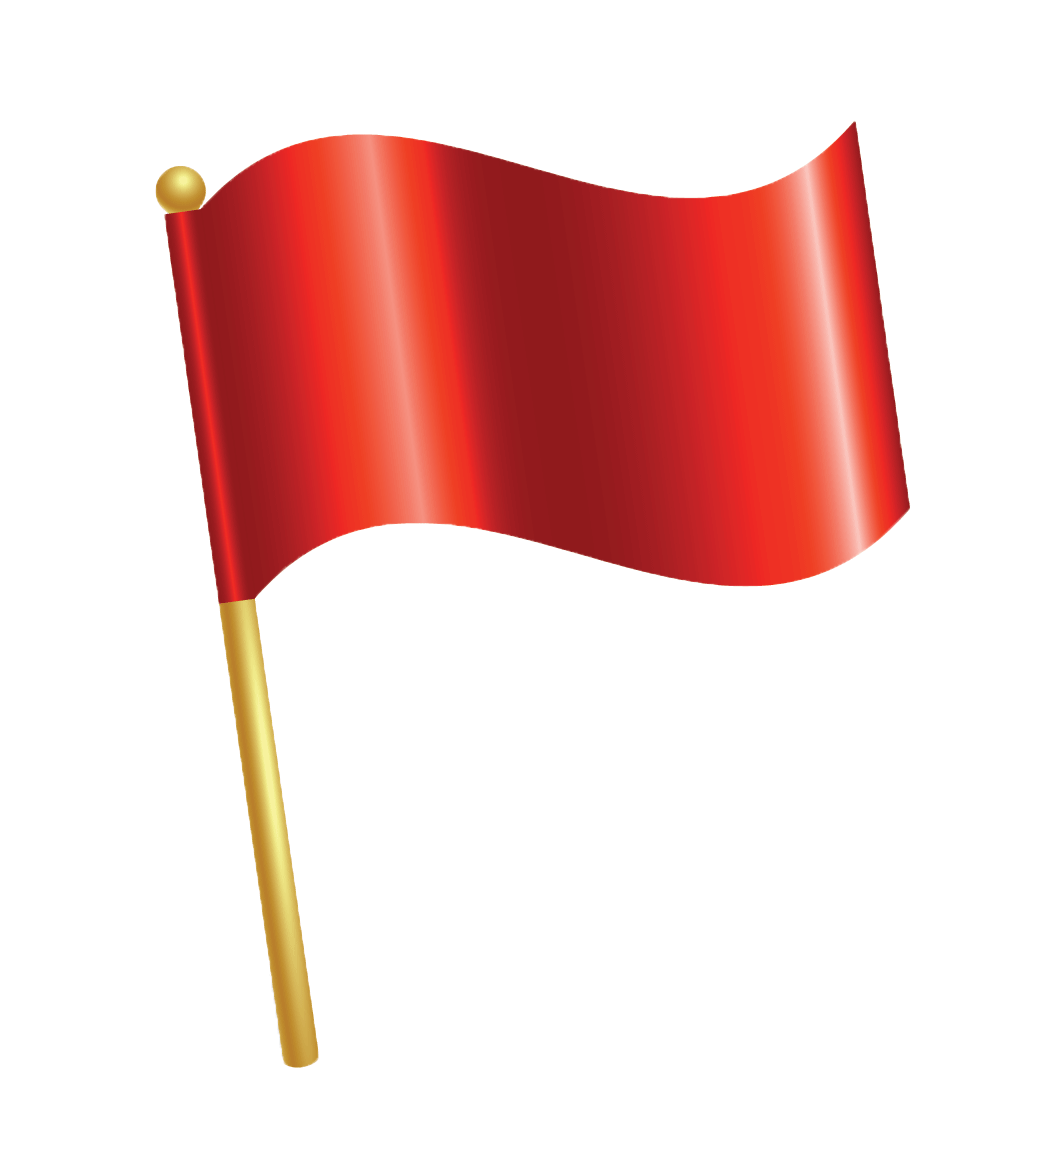 Violating Federally Required Red Flag Regulation Program